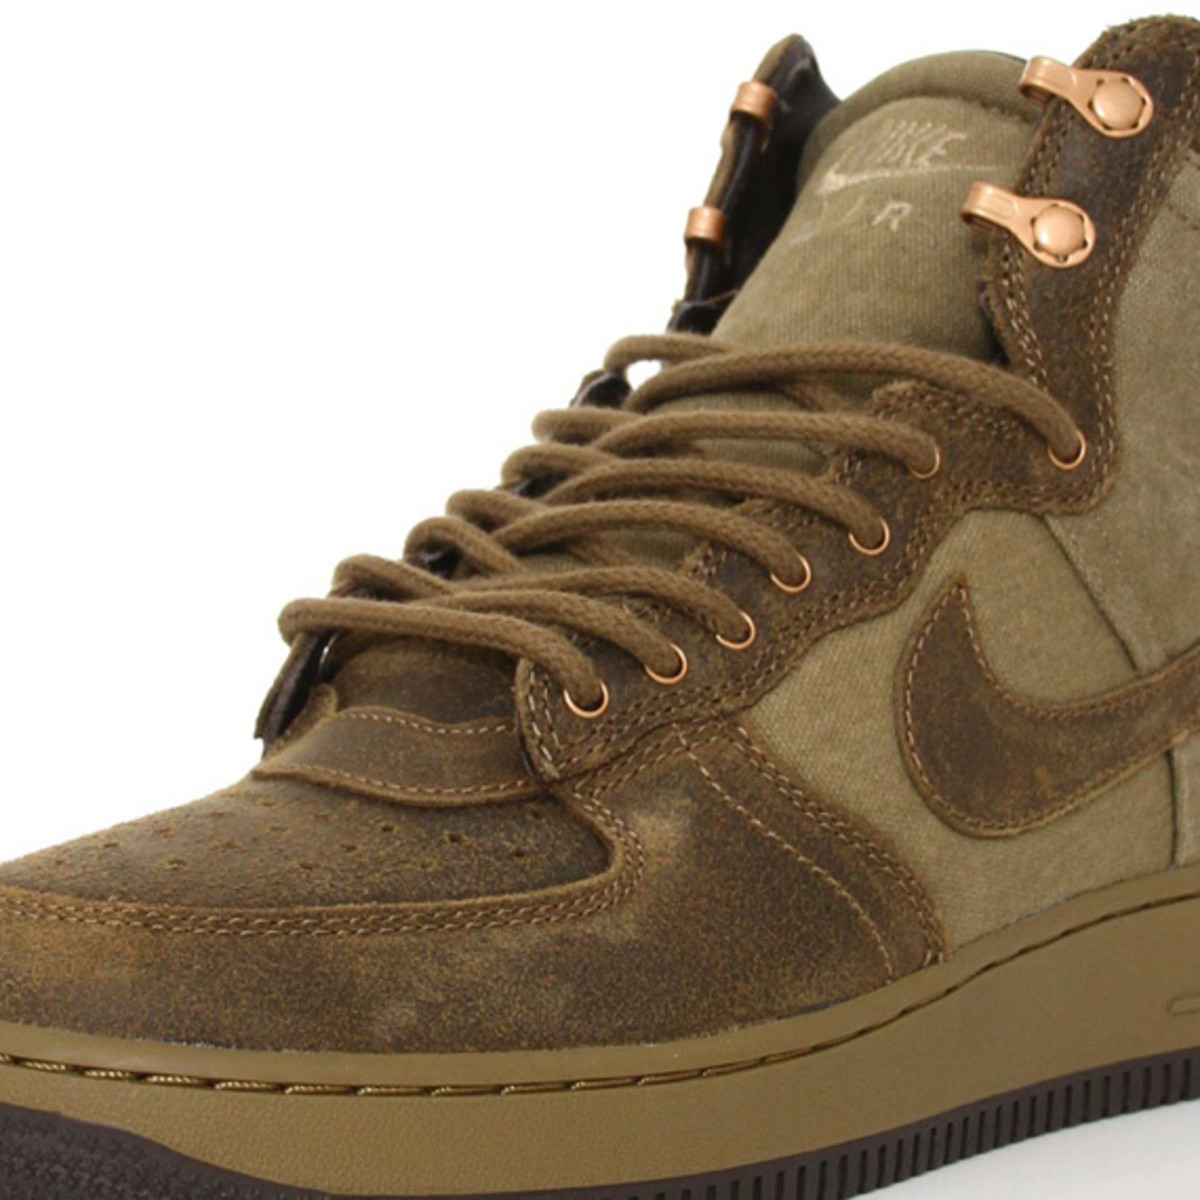 nike-air-force-1-hi-dcn-military-boot-raw-umber-05